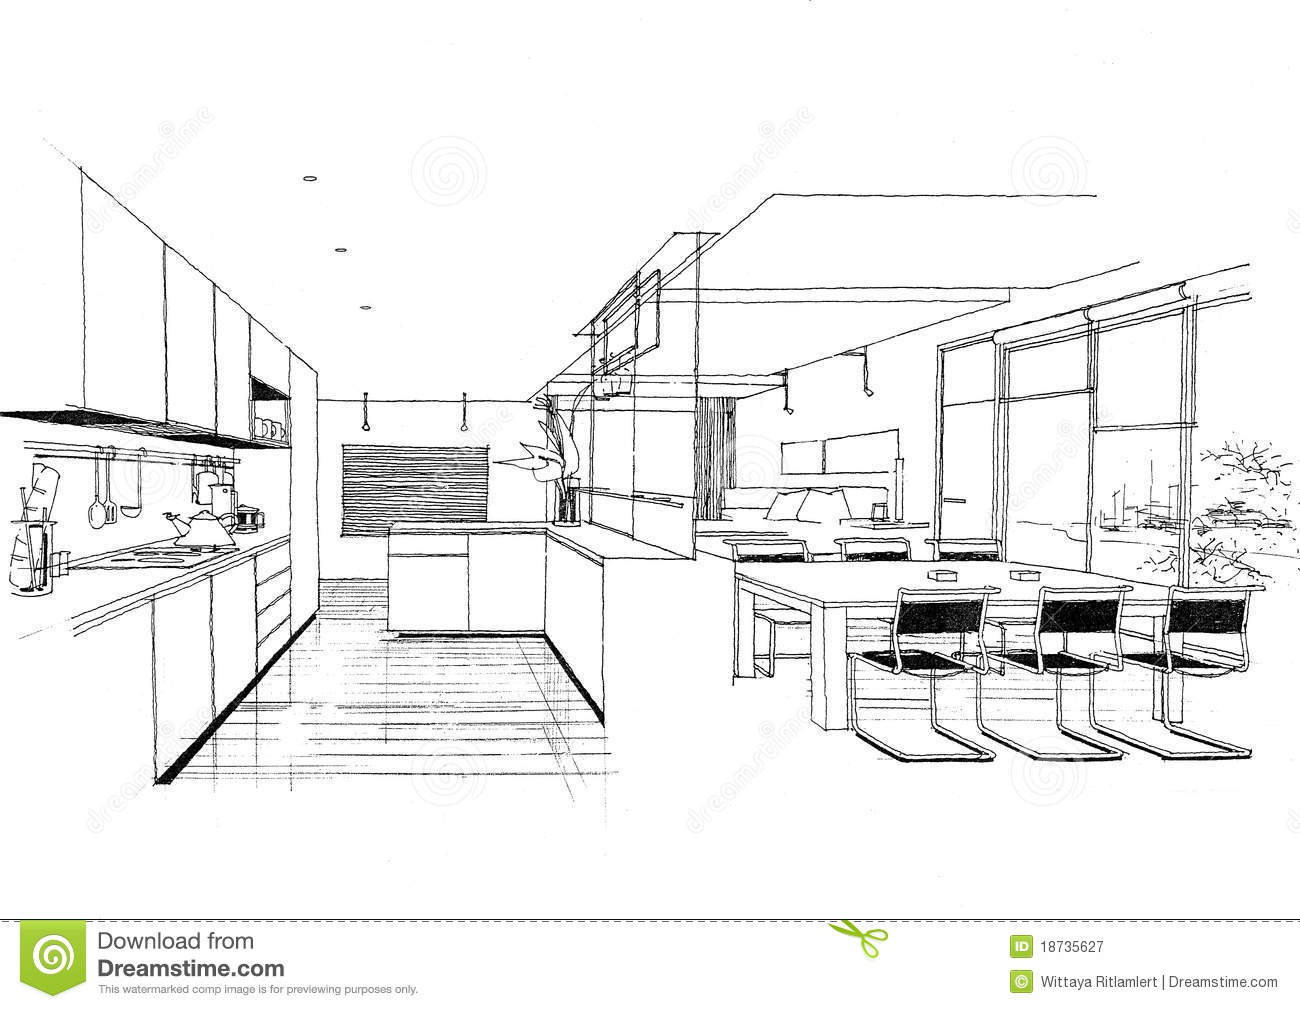 Interior Architecture Construction Landscape Sketch Design Image Art